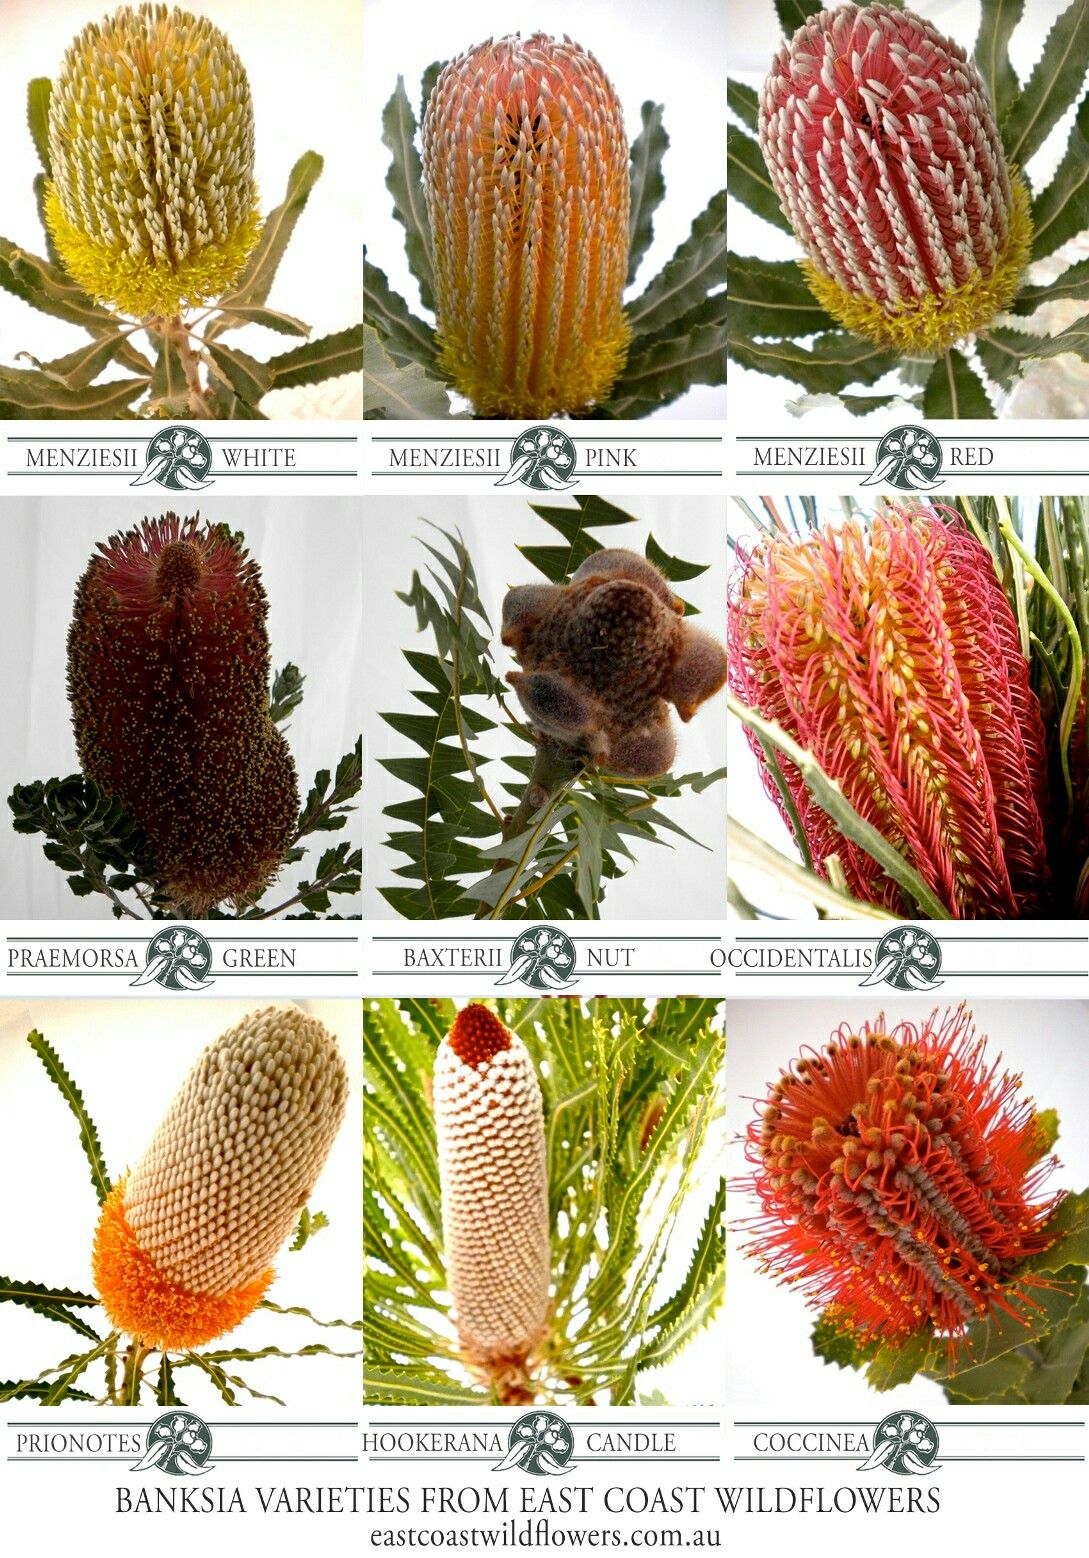 Nine of our most popular banksia varieties that we grow and